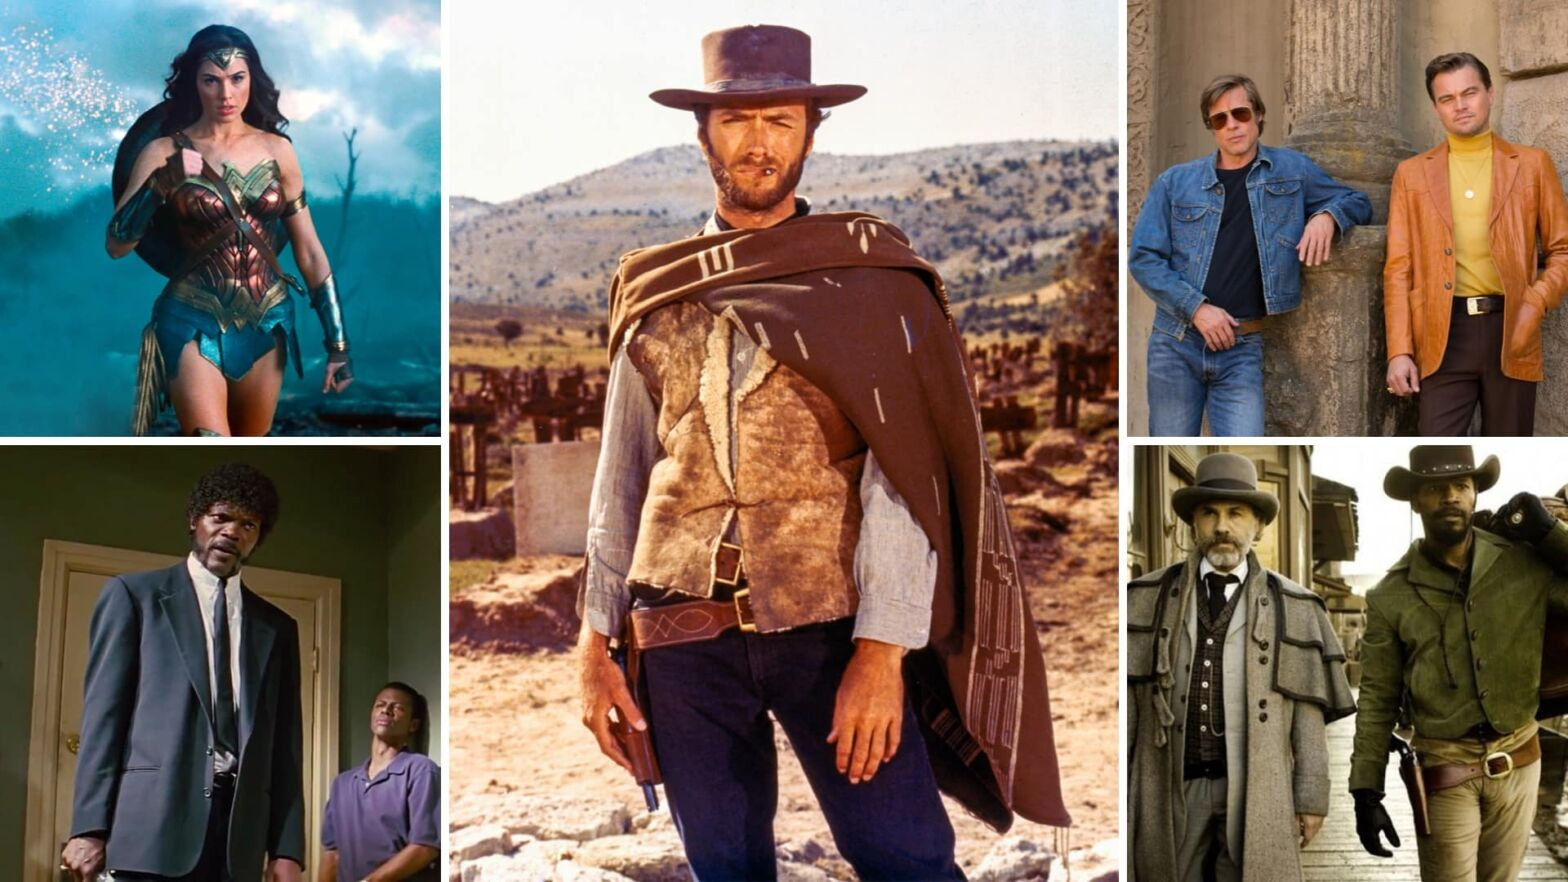 The Modern Cowboy Shot The Different Types of Shots in Film Explained Featured